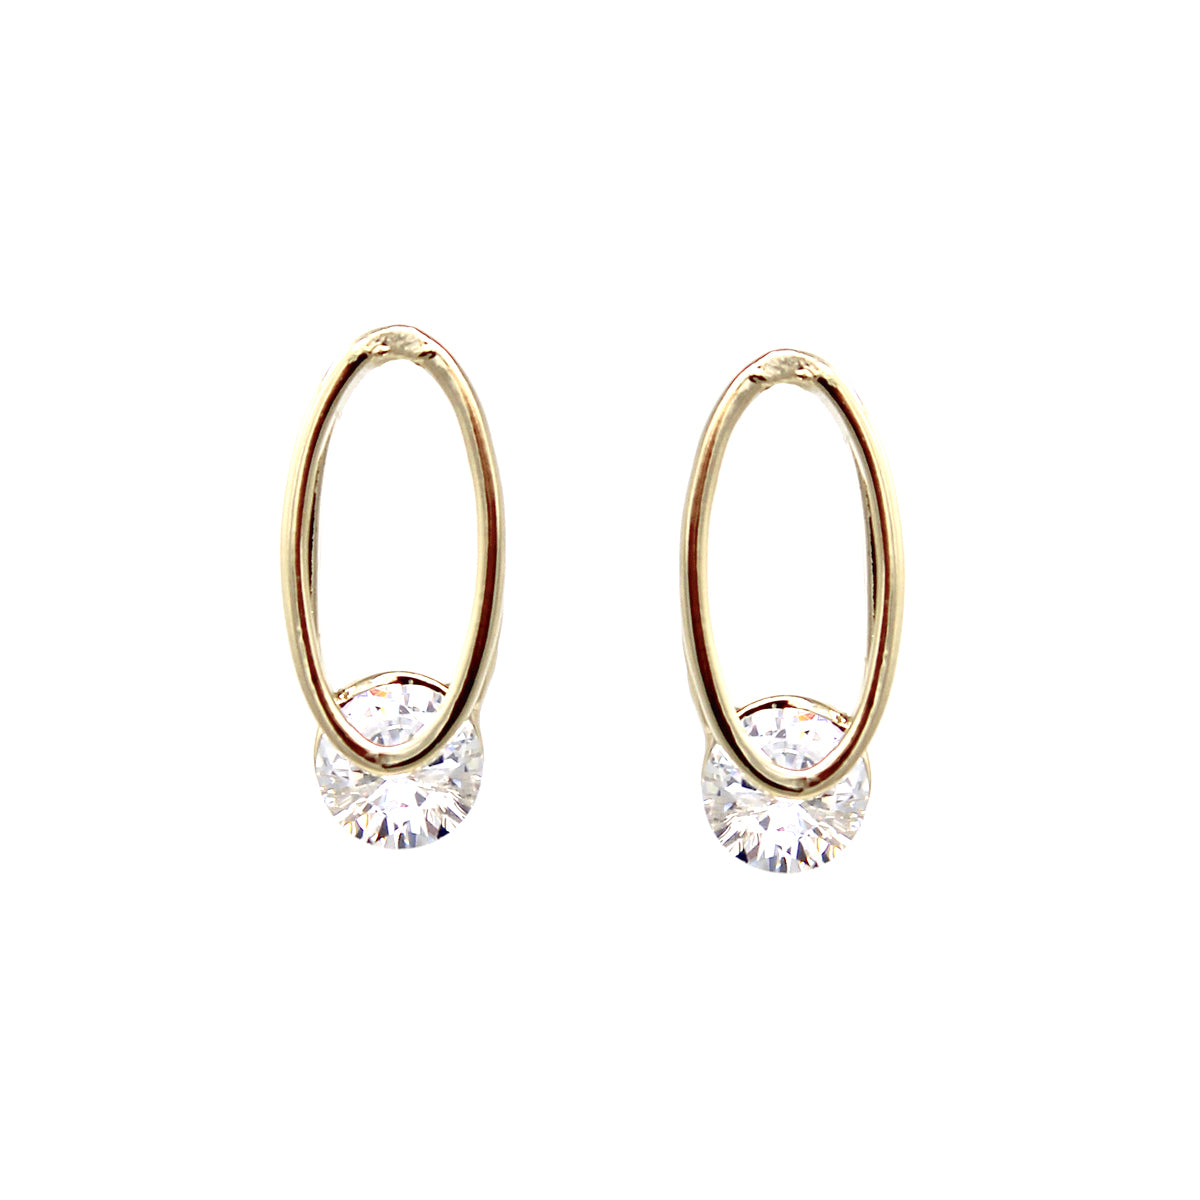 Oval Shape Hoop With Cubic Zirconia Stud Earrings